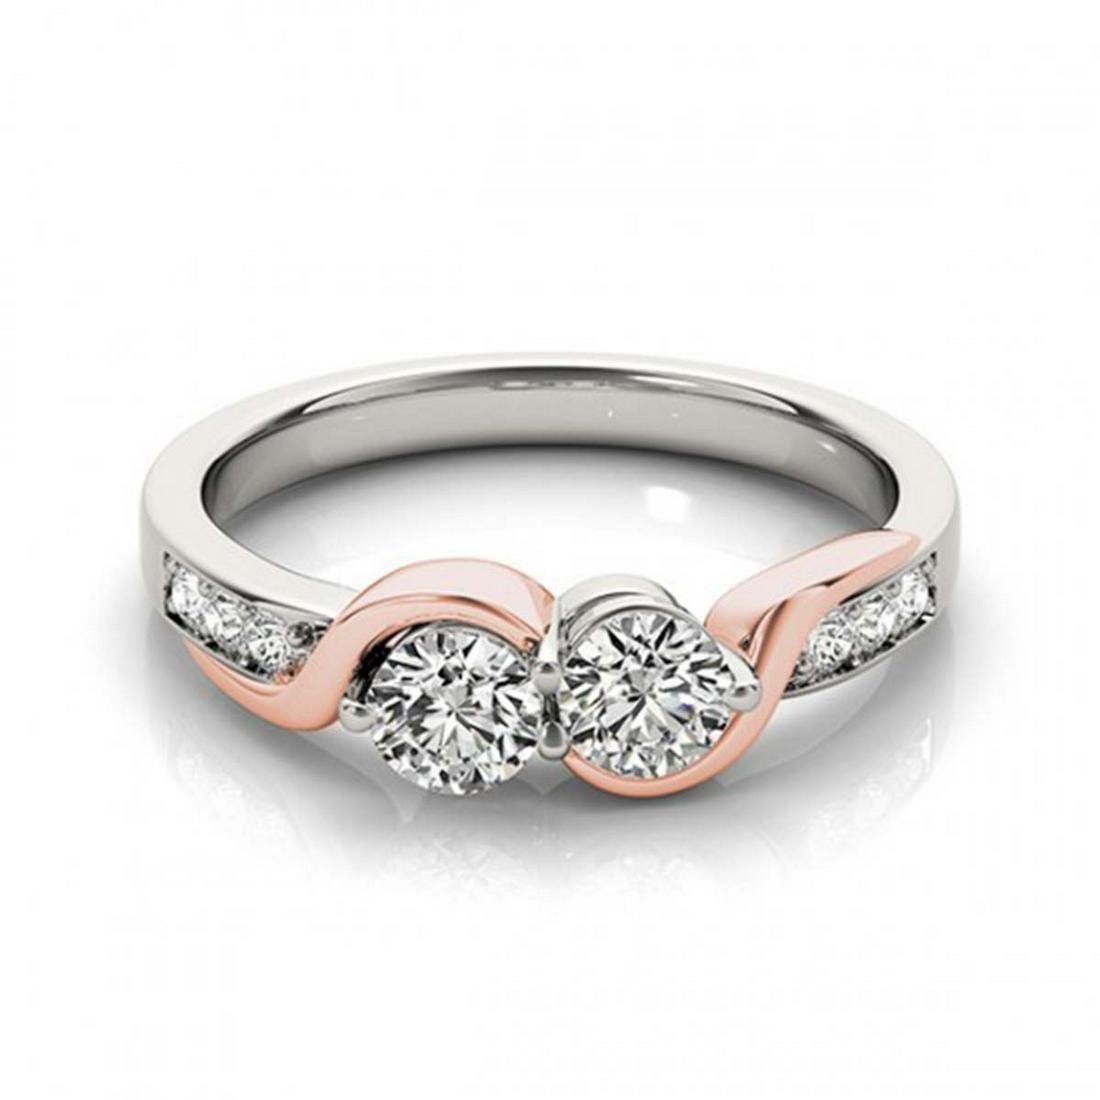 1.25 ctw VS/SI Diamond 2 Stone Ring 14K White & Rose